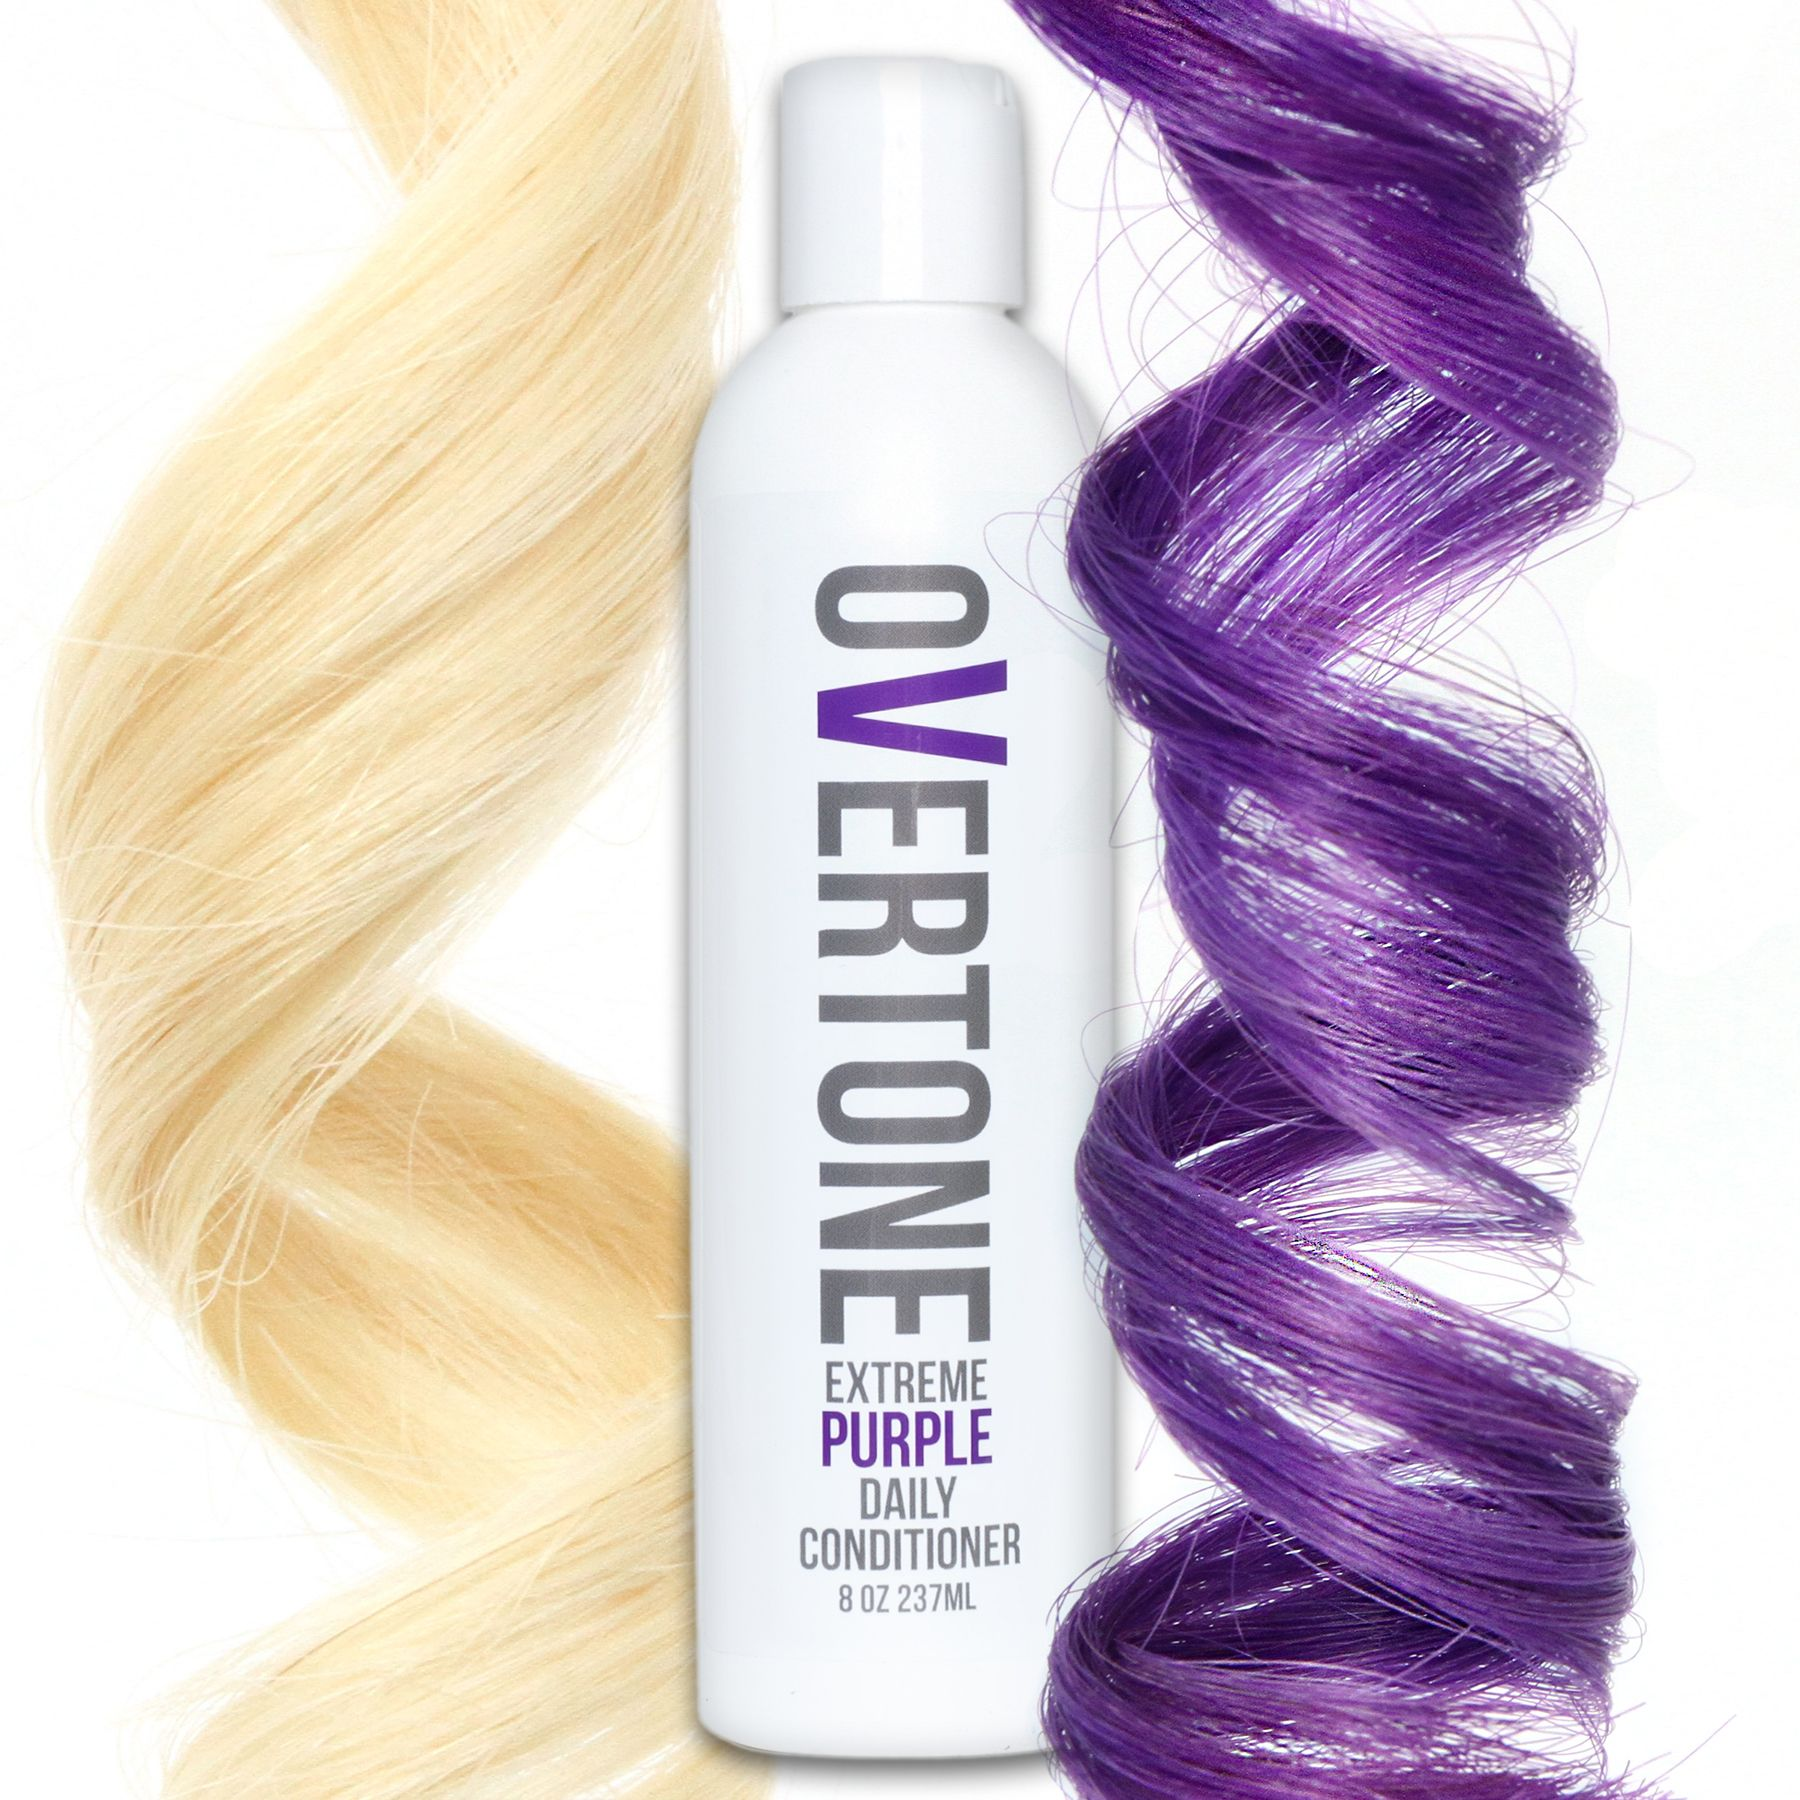 Extreme Purple Daily Conditioner Free Hair coloring and Makeup